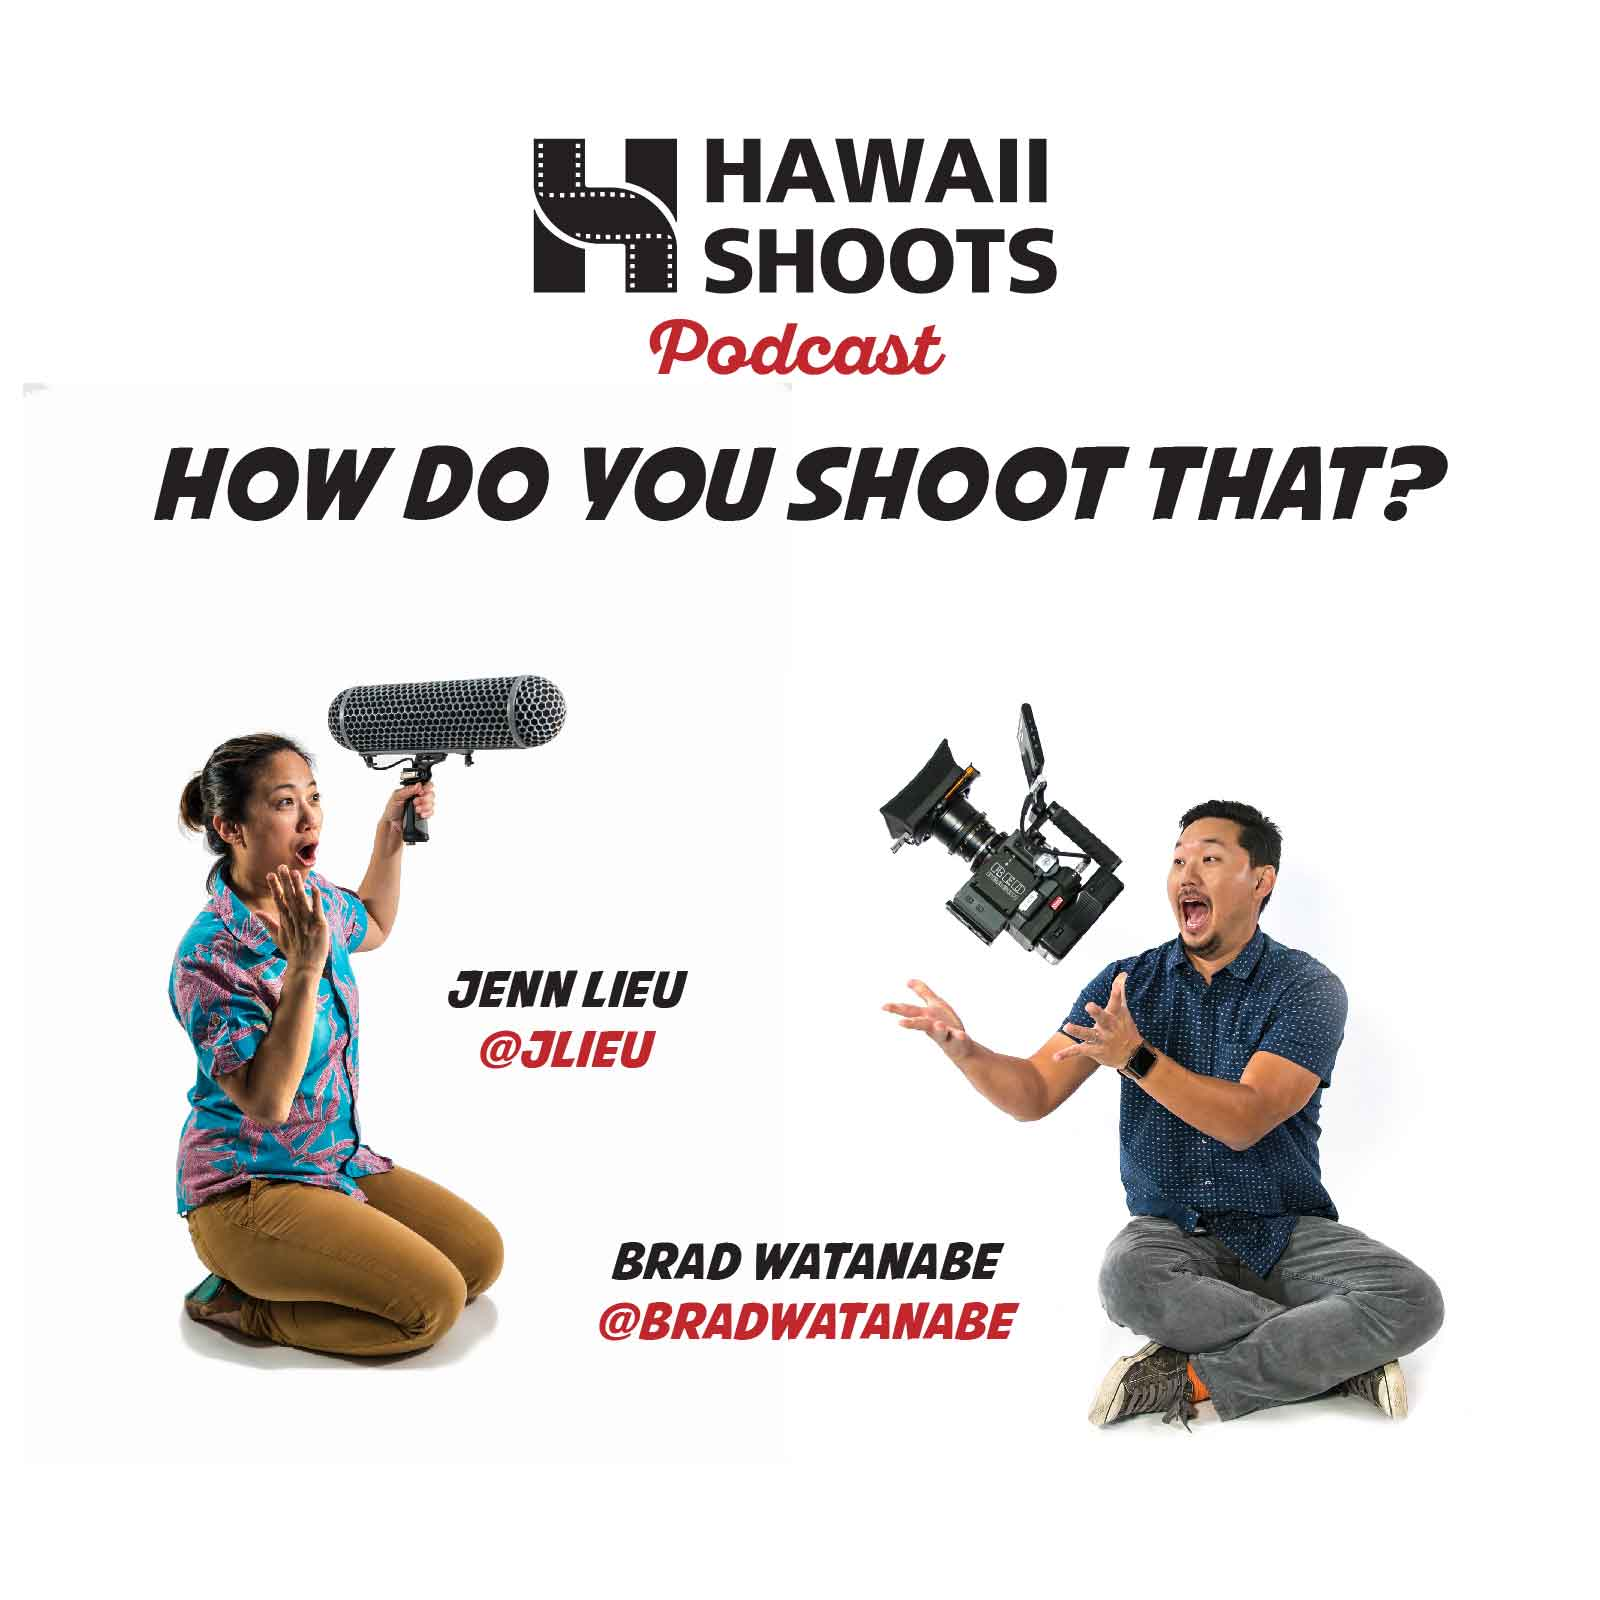 Hawaii Shoots Podcast: Getting Started in Video Production with Brad Watanabe and Jenn Lieu